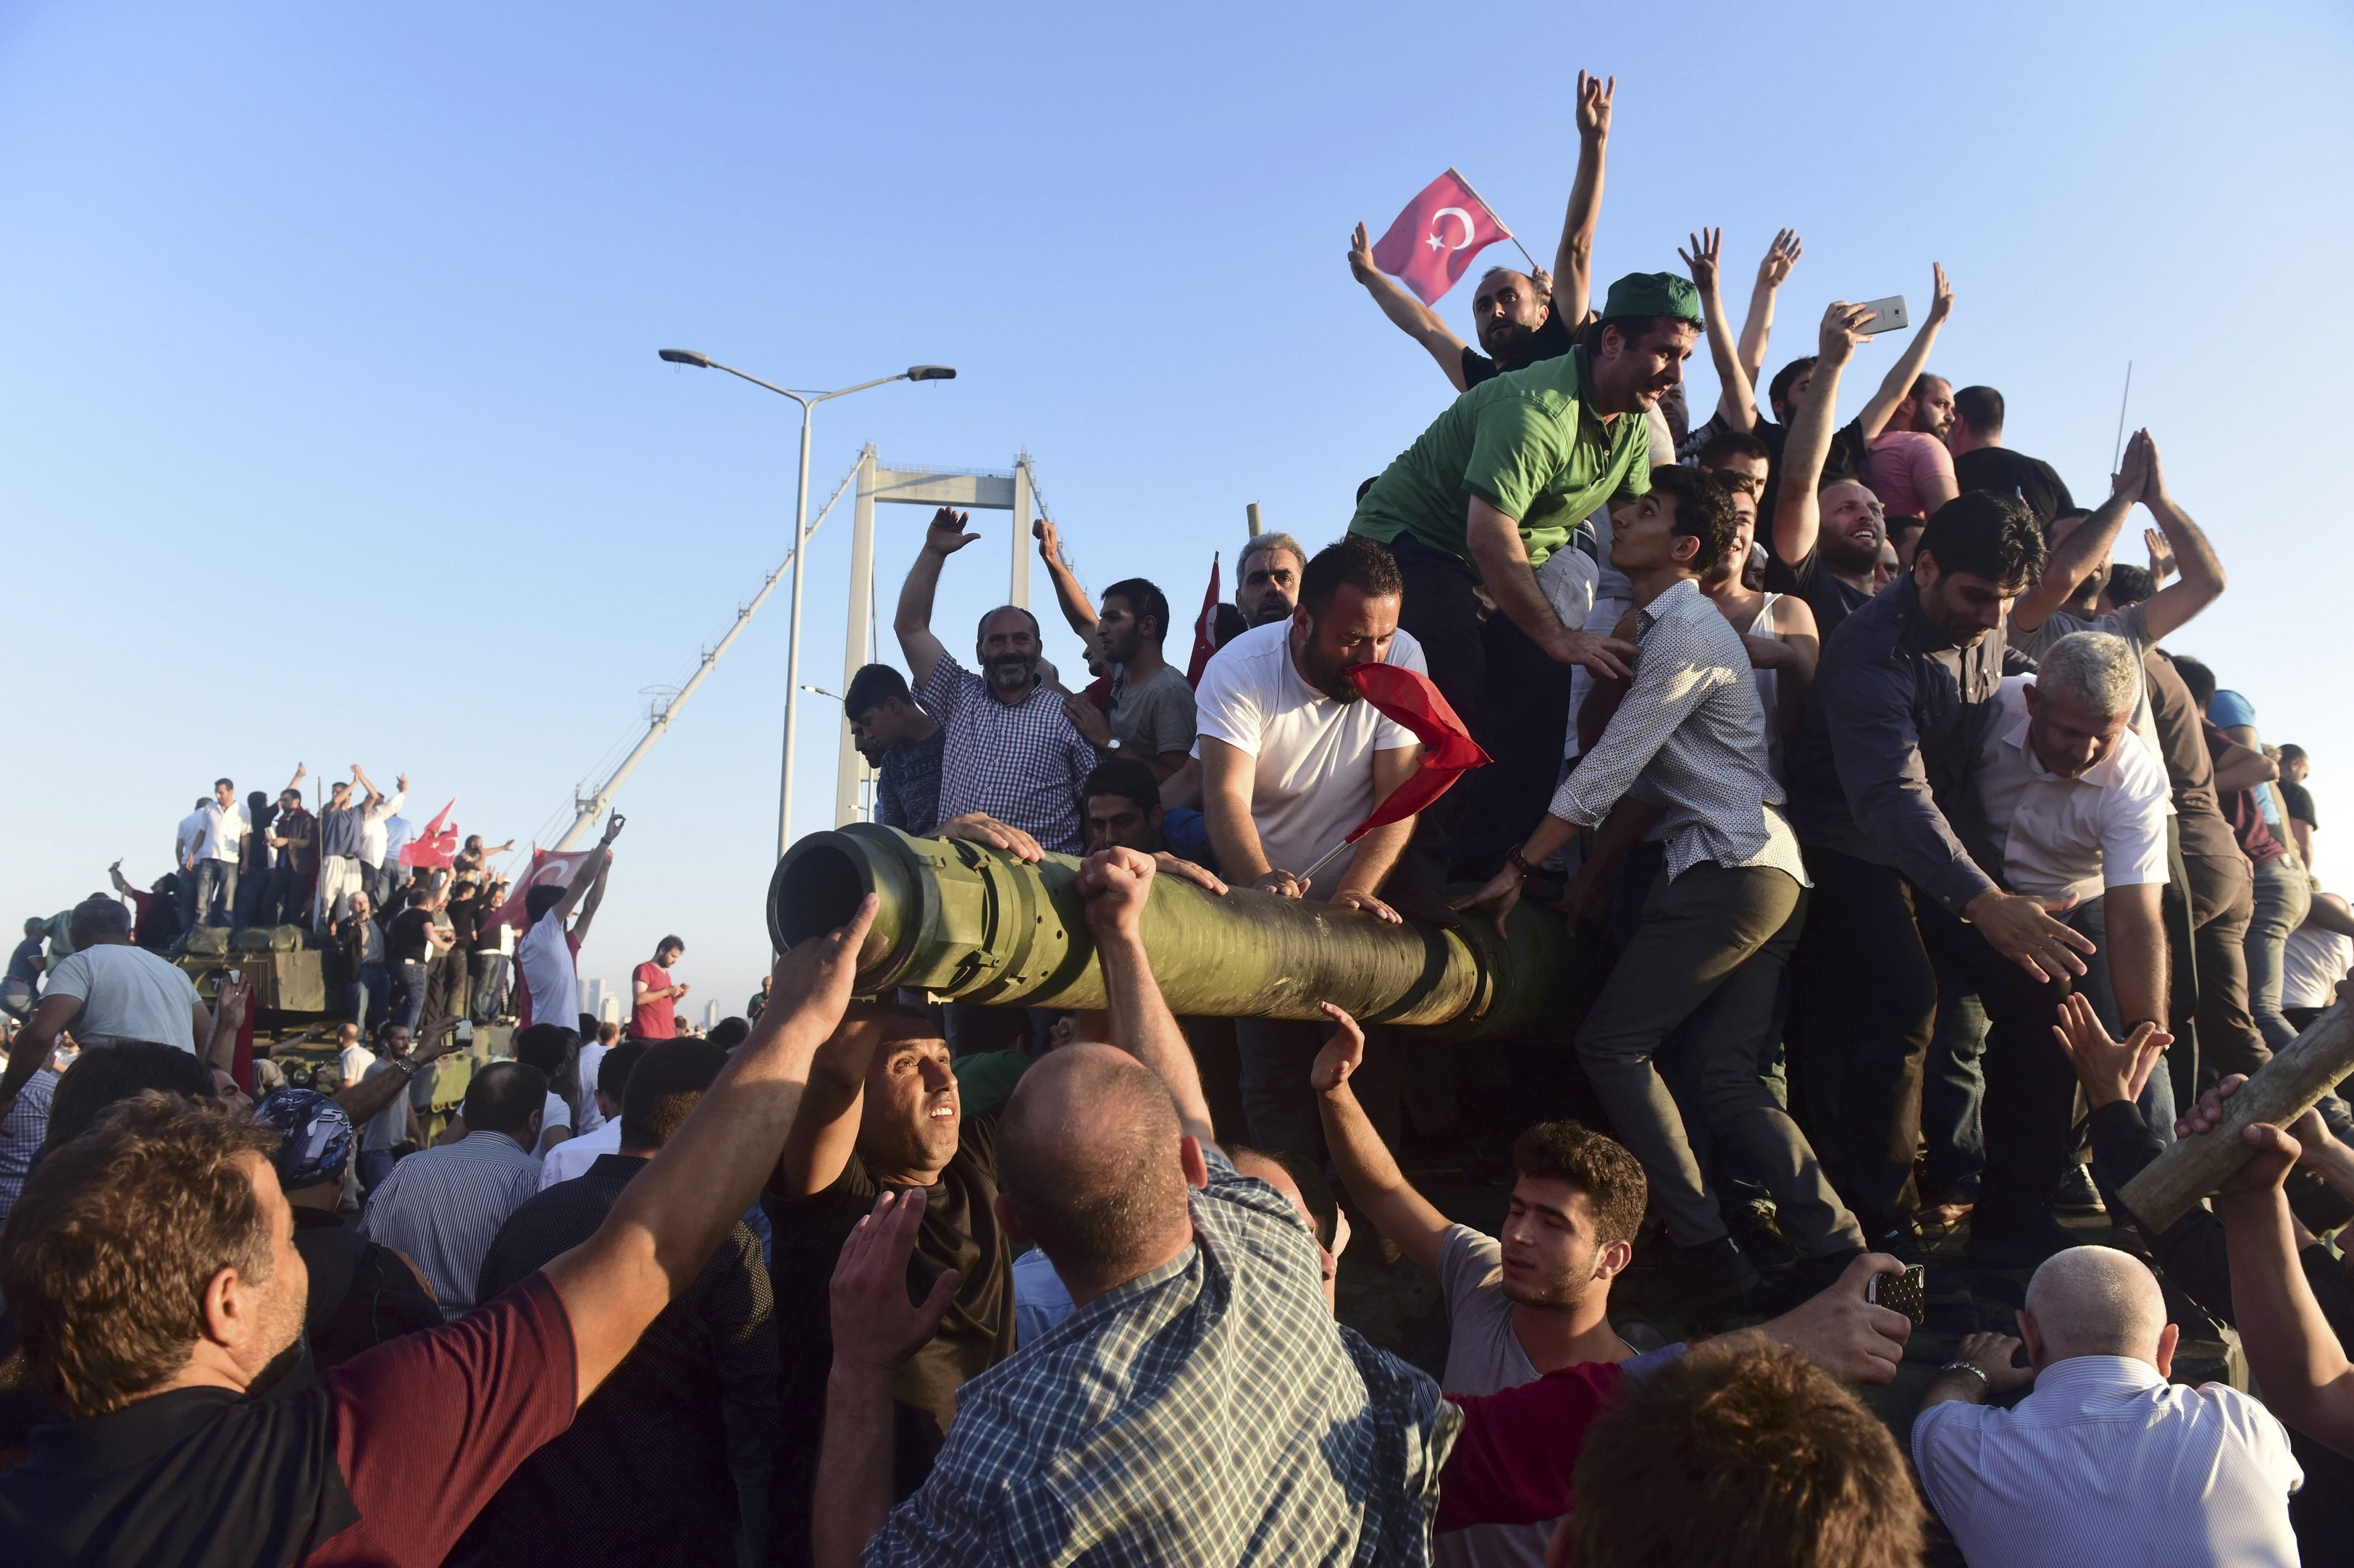 Supporters of Tukish President Tayyip Erdogan celebrate after soldiers involved in the coup surrendered on the Bosphorus Bridge in Istanbul, Turkey July 16, 2016